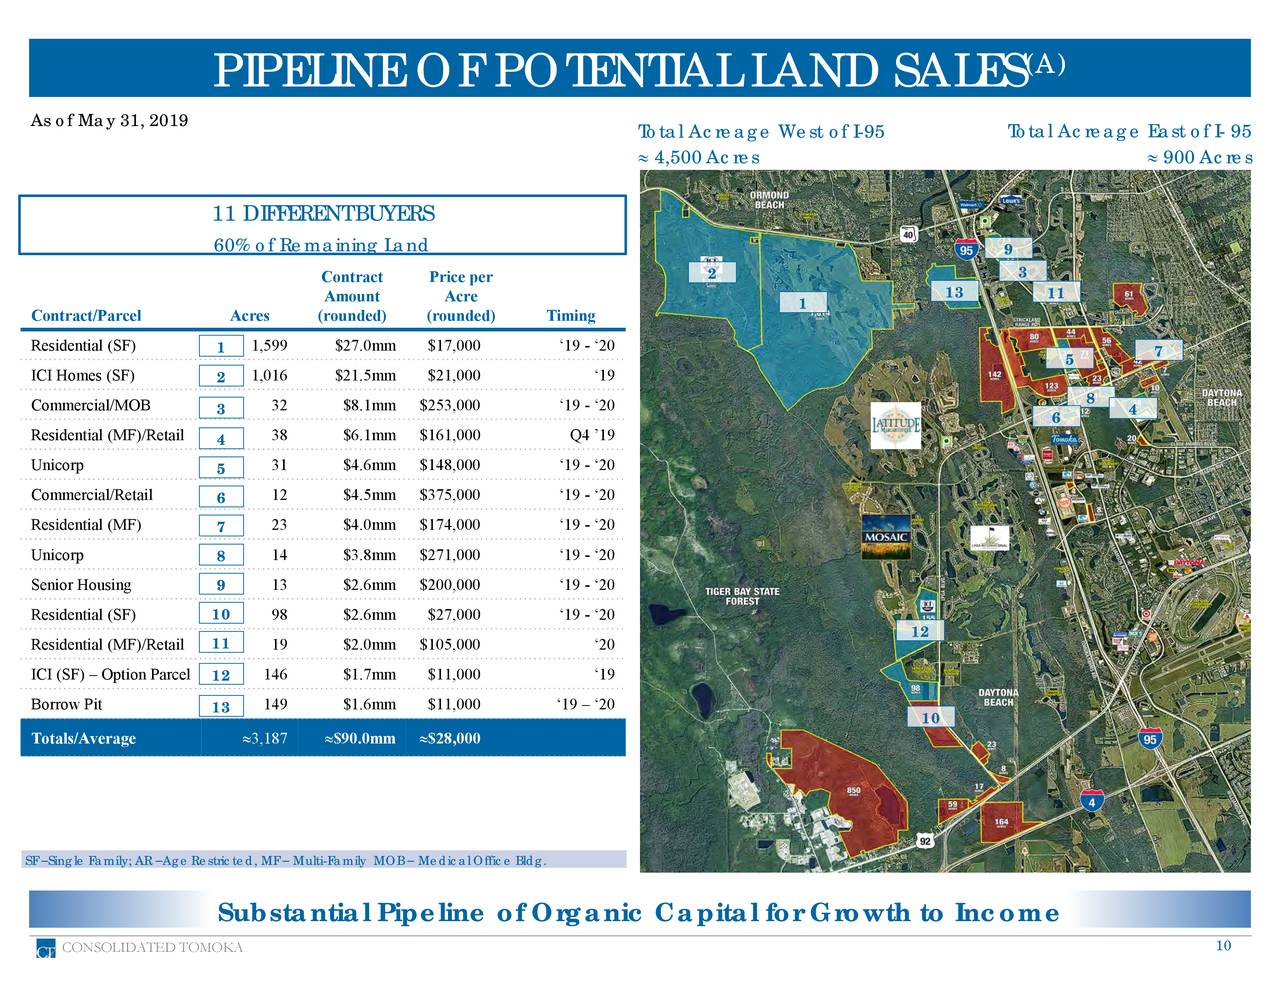 As of May 31, 2019 Total Acreage West of I-95 Total Acreage East of I- 95  4,500Acres  900Acres 11 DIFFERENTBUYERS 60% of RemainingLand 9 2 3 Contract Price per Amount Acre 1 13 11 Contract/Parcel Acres (rounded) (rounded) Timing Residential (SF) 1 1,599 $27.0mm $17,000 '19 - '20 7 5 ICI Homes (SF) 2 1,016 $21.5mm $21,000 '19 8 Commercial/MOB 3 32 $8.1mm $253,000 '19 - '20 4 6 Residential (MF)/Retai4 38 $6.1mm $161,000 Q4 '19 Unicorp 31 $4.6mm $148,000 '19 - '20 5 Commercial/Retail 12 $4.5mm $375,000 '19 - '20 6 Residential (MF) 7 23 $4.0mm $174,000 '19 - '20 Unicorp 8 14 $3.8mm $271,000 '19 - '20 Senior Housing 9 13 $2.6mm $200,000 '19 - '20 Residential (SF) 10 98 $2.6mm $27,000 '19 - '20 12 Residential (MF)/Retail1 19 $2.0mm $105,000 '20 ICI (SF) – Option Parc12 146 $1.7mm $11,000 '19 Borrow Pit 149 $1.6mm $11,000 '19 – '20 13 10 Totals/Average 3,187 $90.0mm $28,000 SF –Single Family; AR –AgeRestricted, MF – Multi-Family MOB – Medical Office Bldg. Substantial Pipeline of Organic Capital for Growth to Income CONSOLIDATED TOMOKA 10